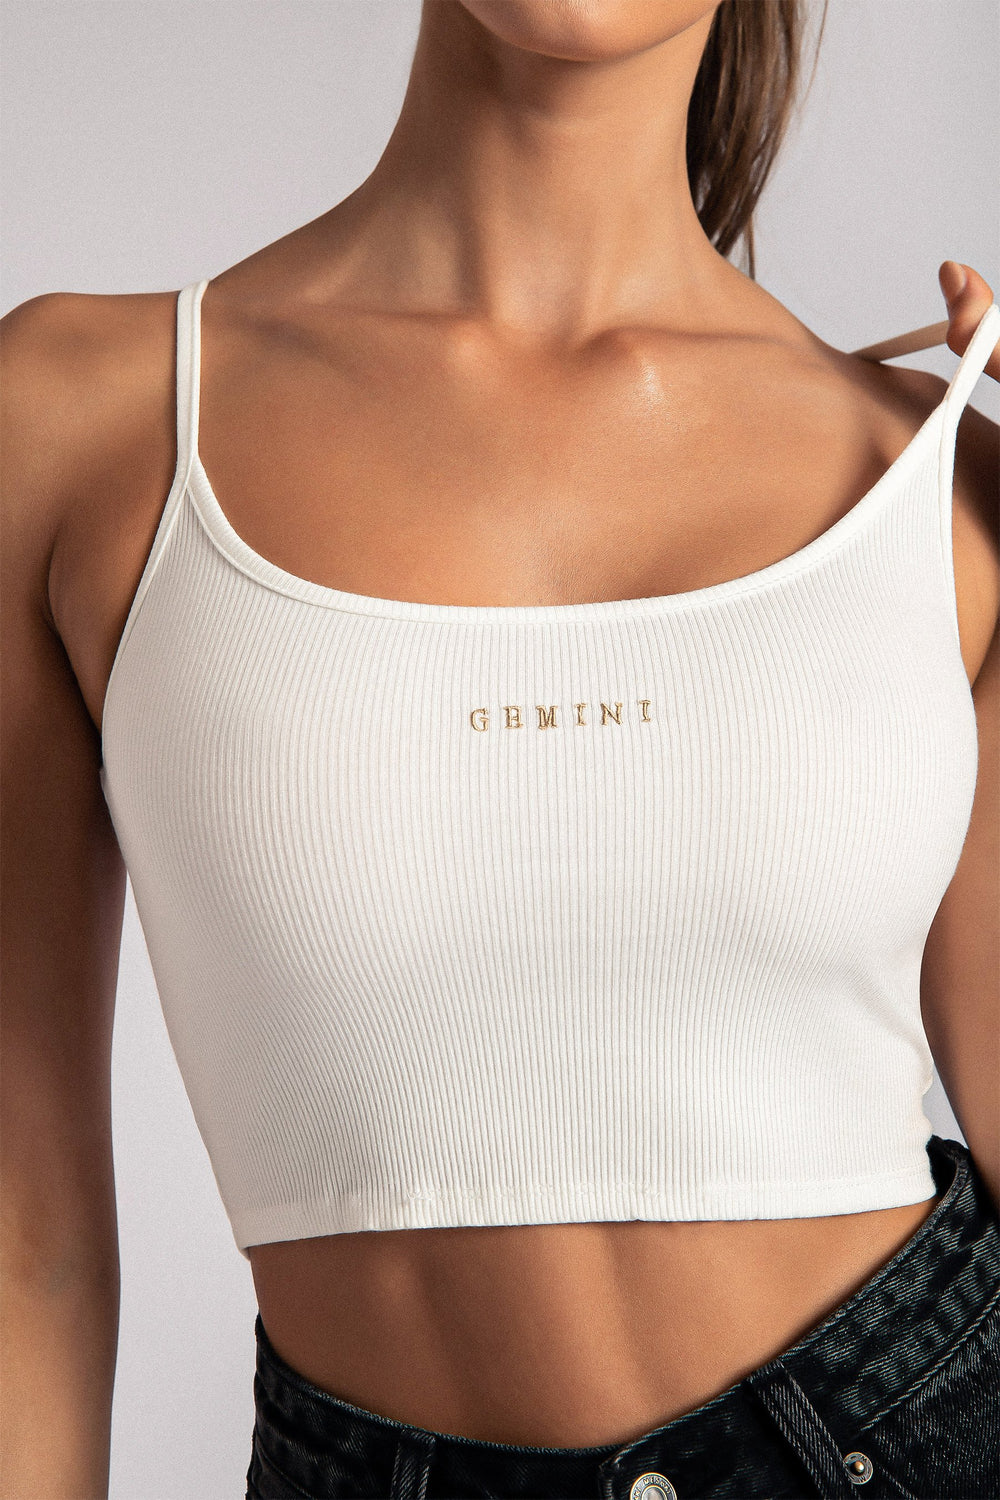 Gemini Zodiac Crop Top - White